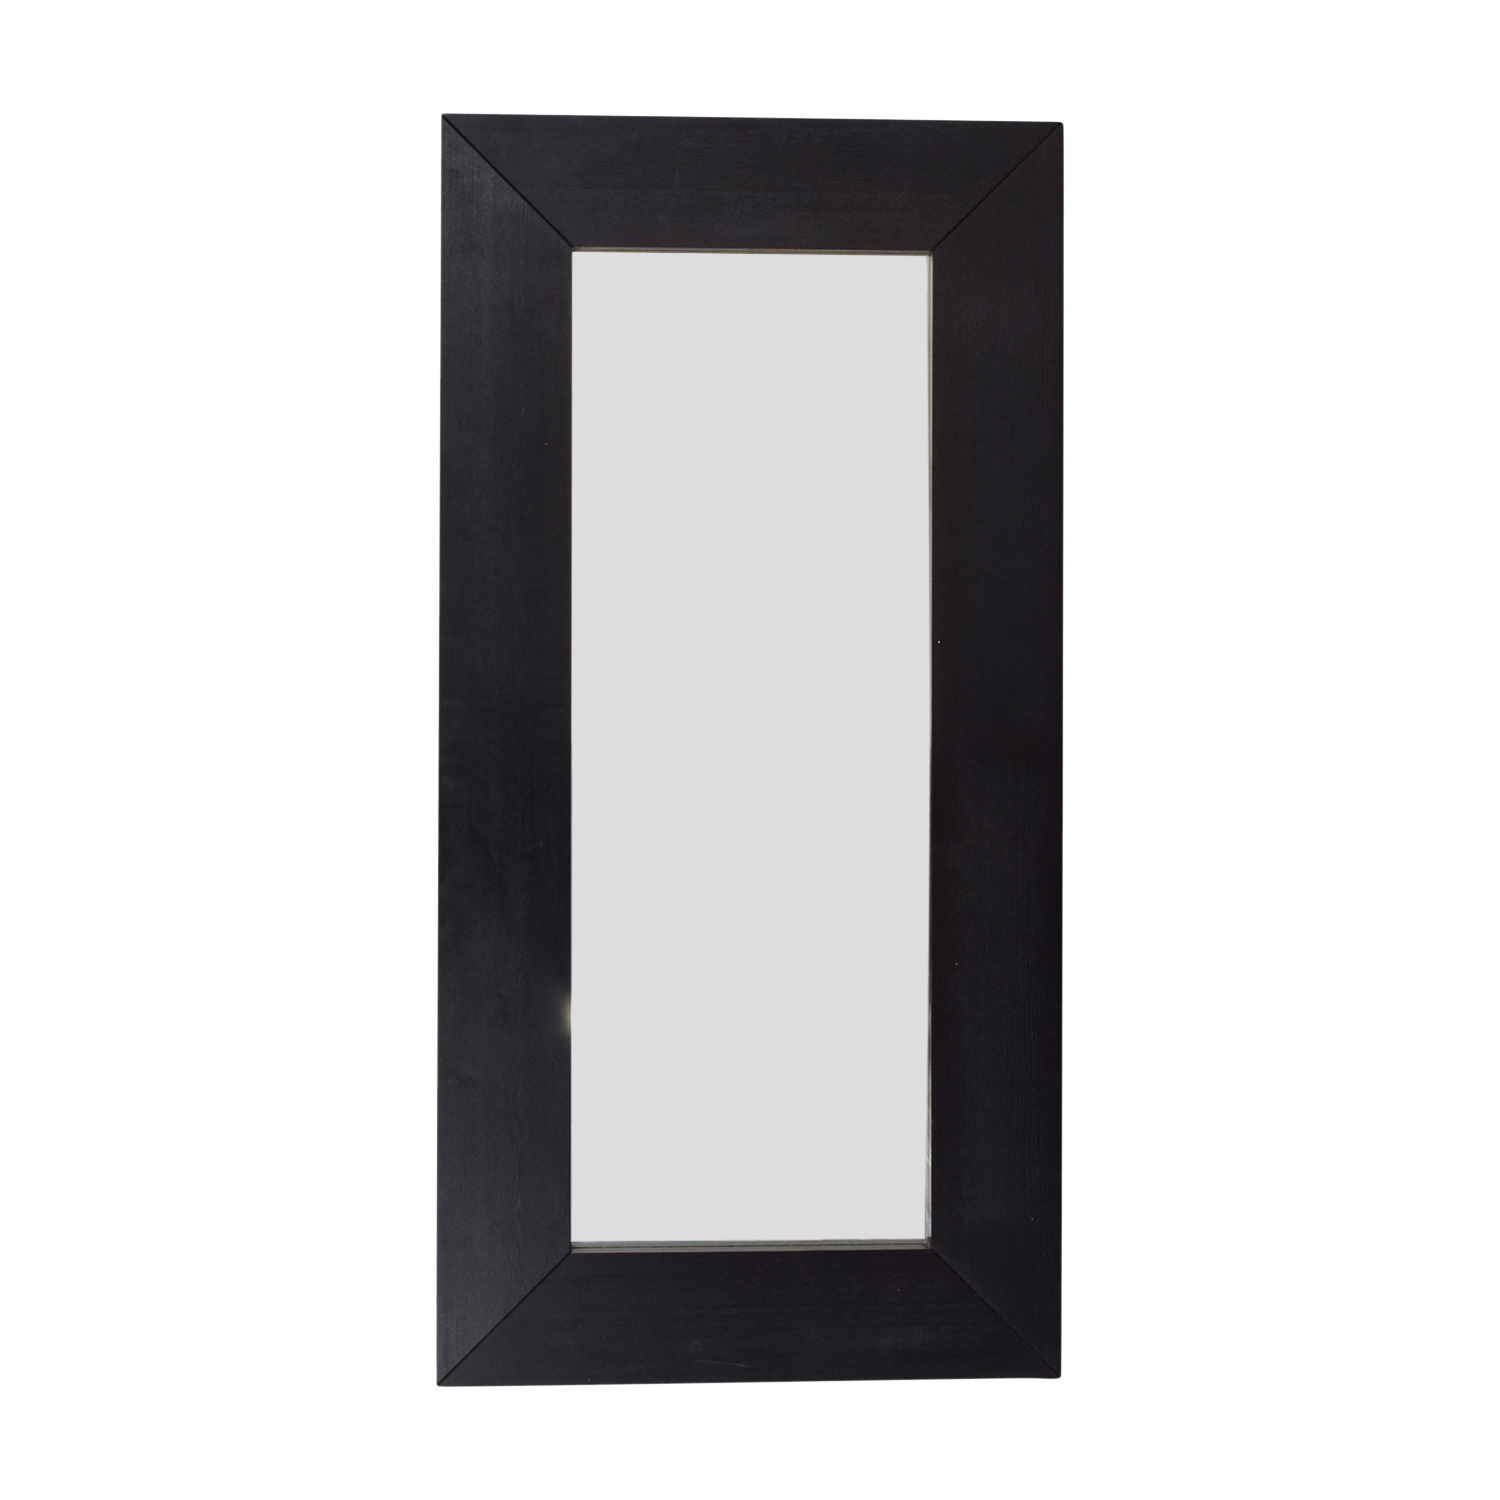 AllModern AllModern Large Wood Framed  Standing Mirror price